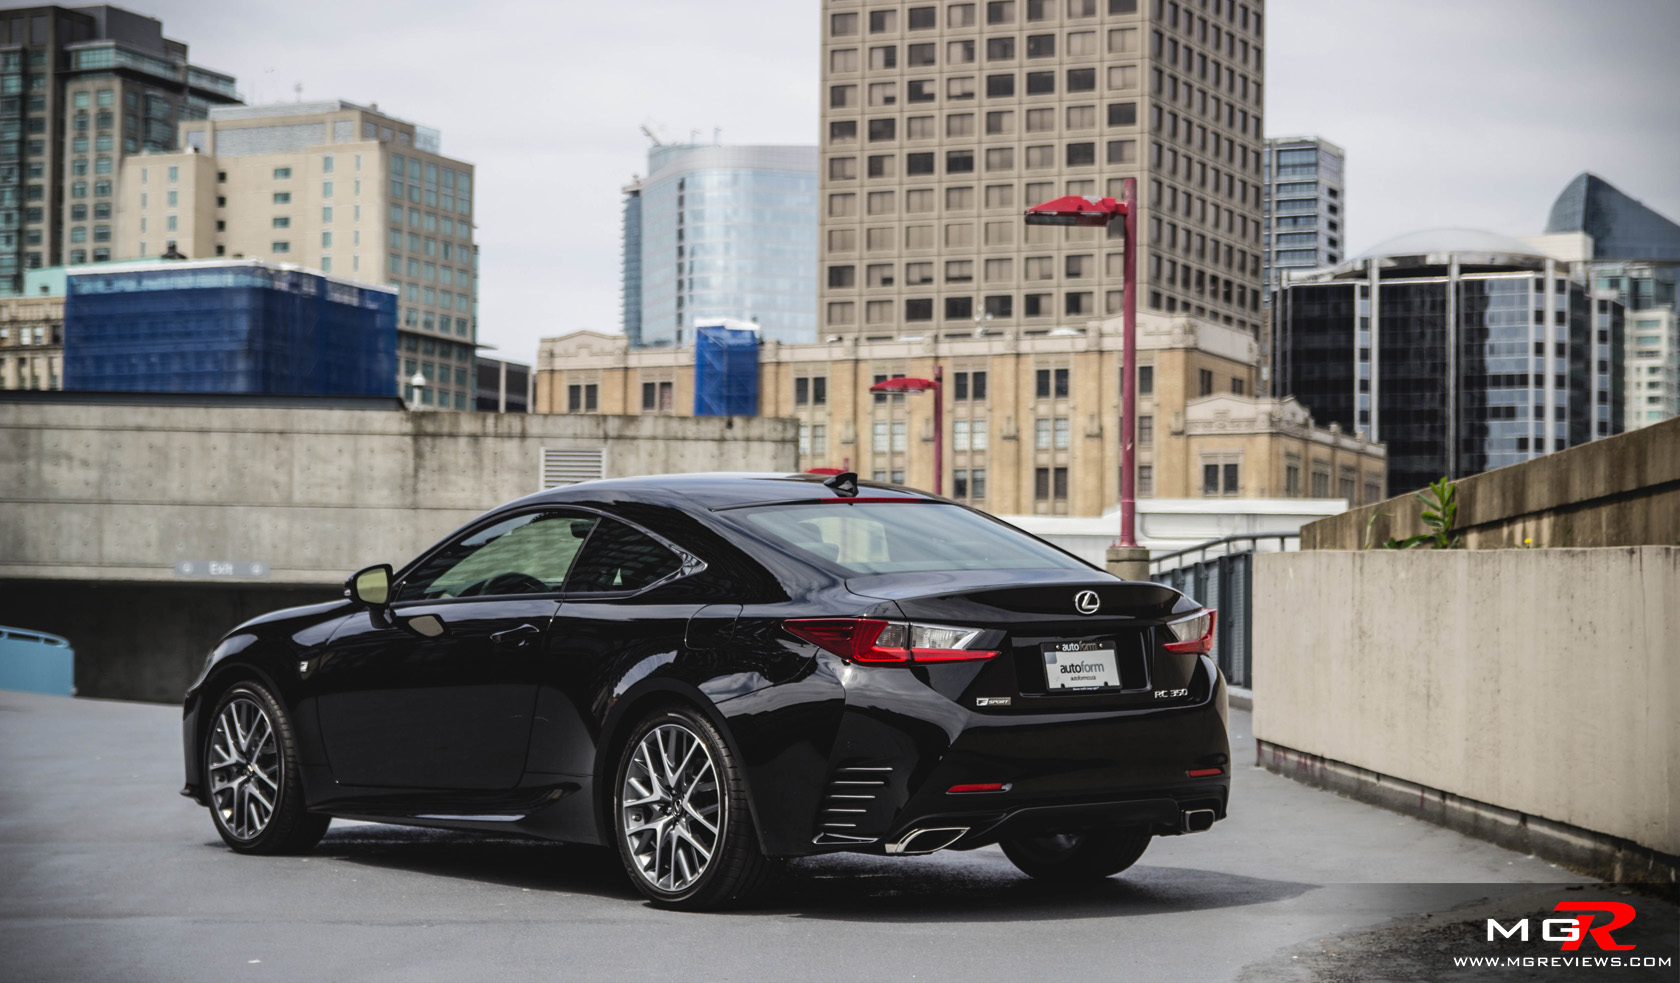 Tanabe | Featured Product: Medalion Touring Exhausts for 2015 Lexus RC 350 F -Sport & Lexus RC F